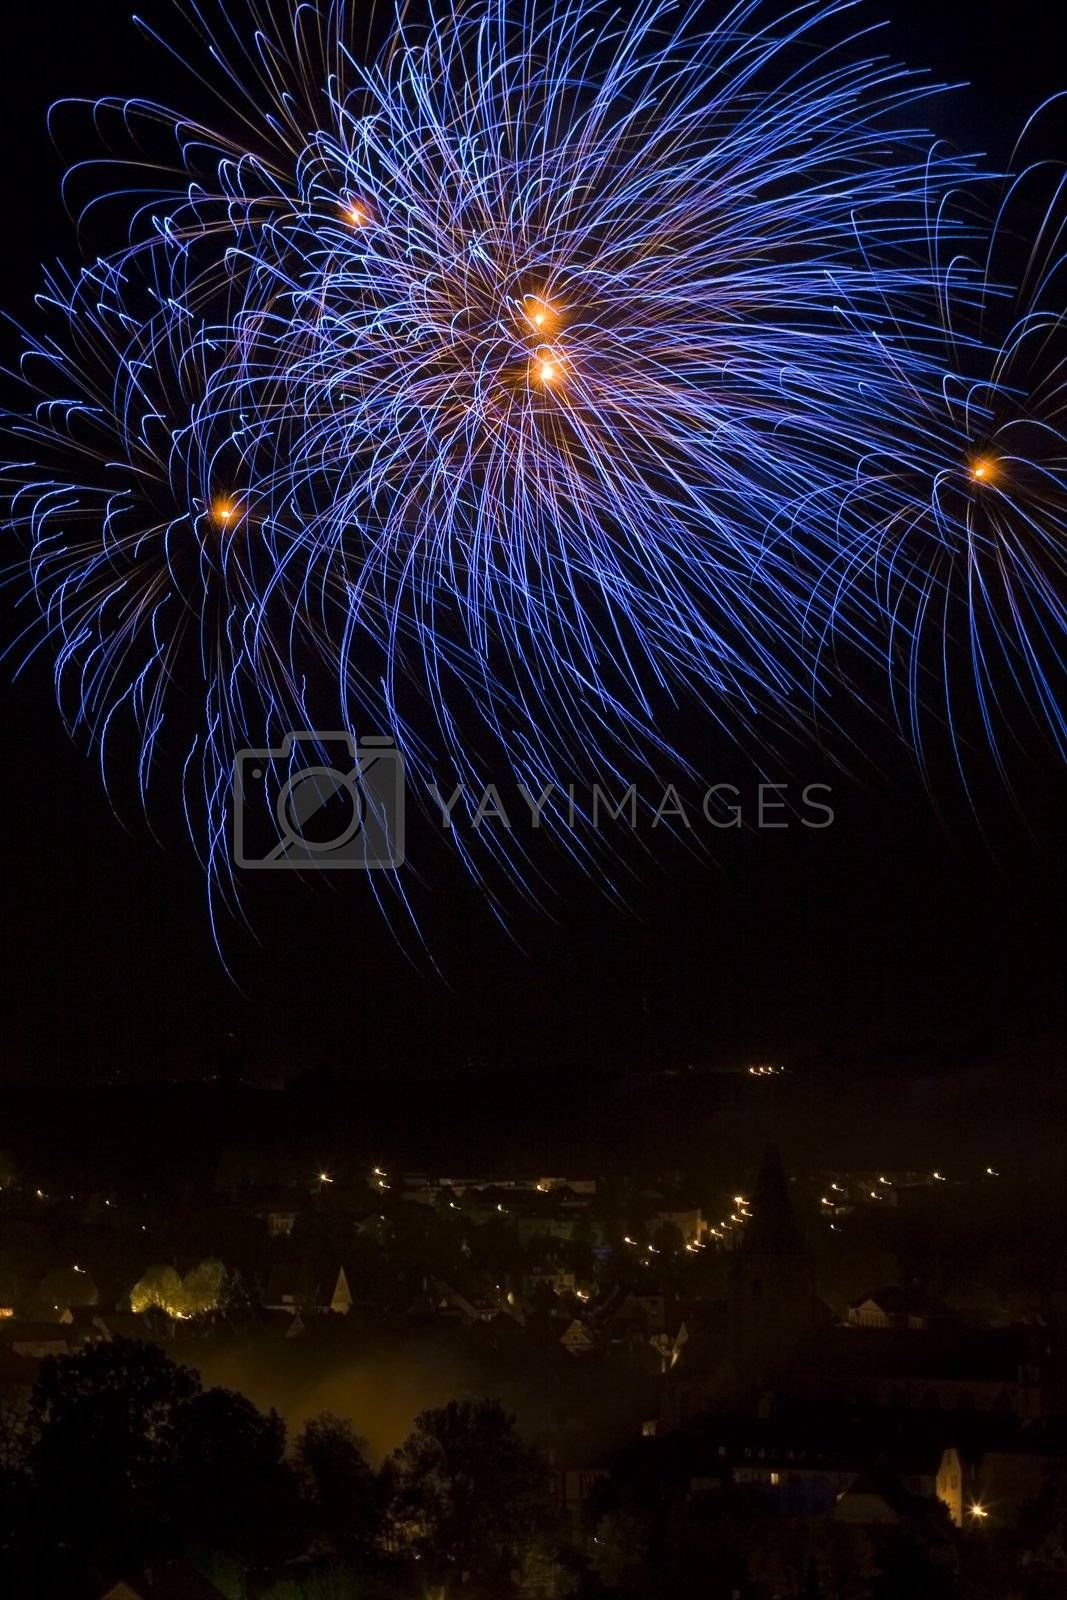 Fireworks by night over a town